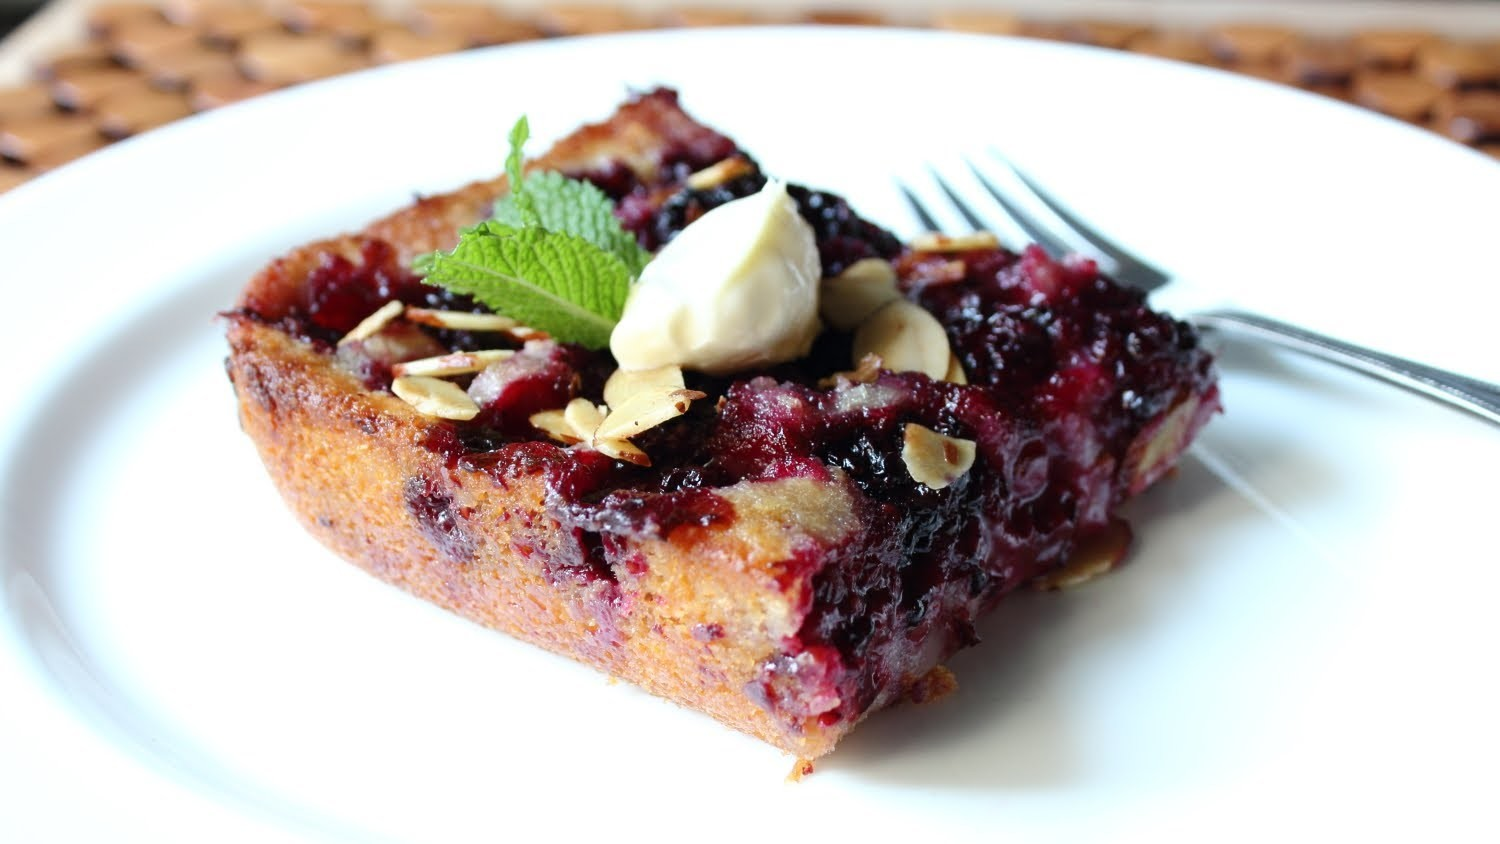 Blackberry Buckle Recipe - How to Make a Blackberry & Almond Buckle